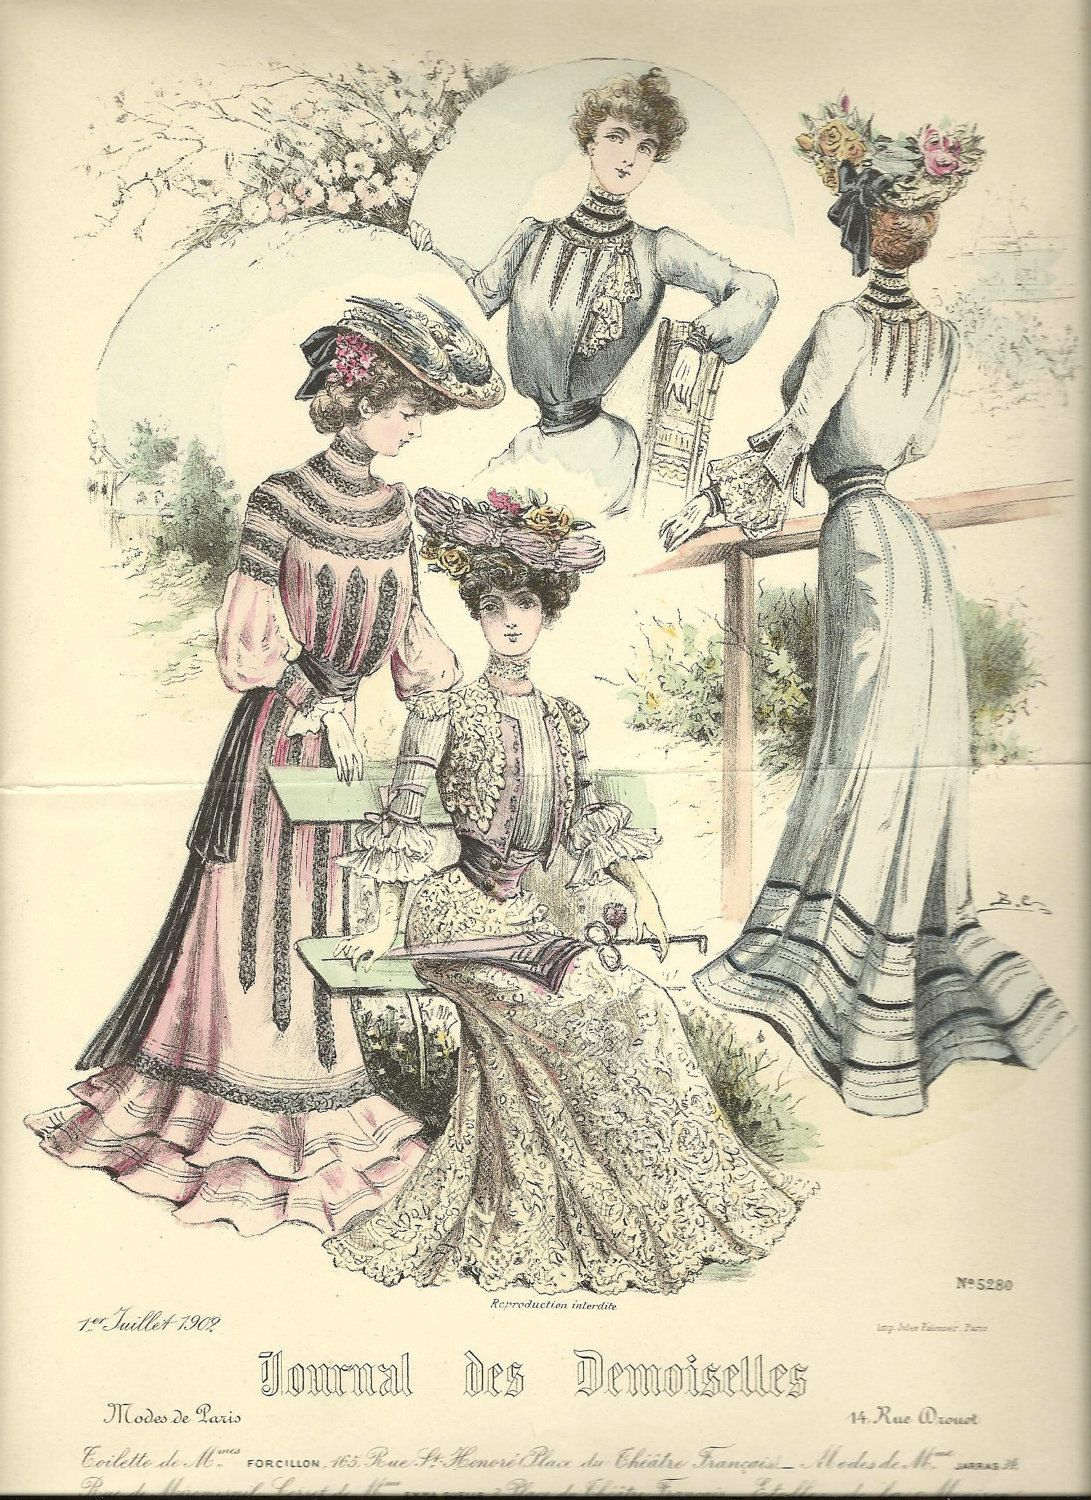 french belle epoque fashion plate - Belle epoque clothes, dress ...